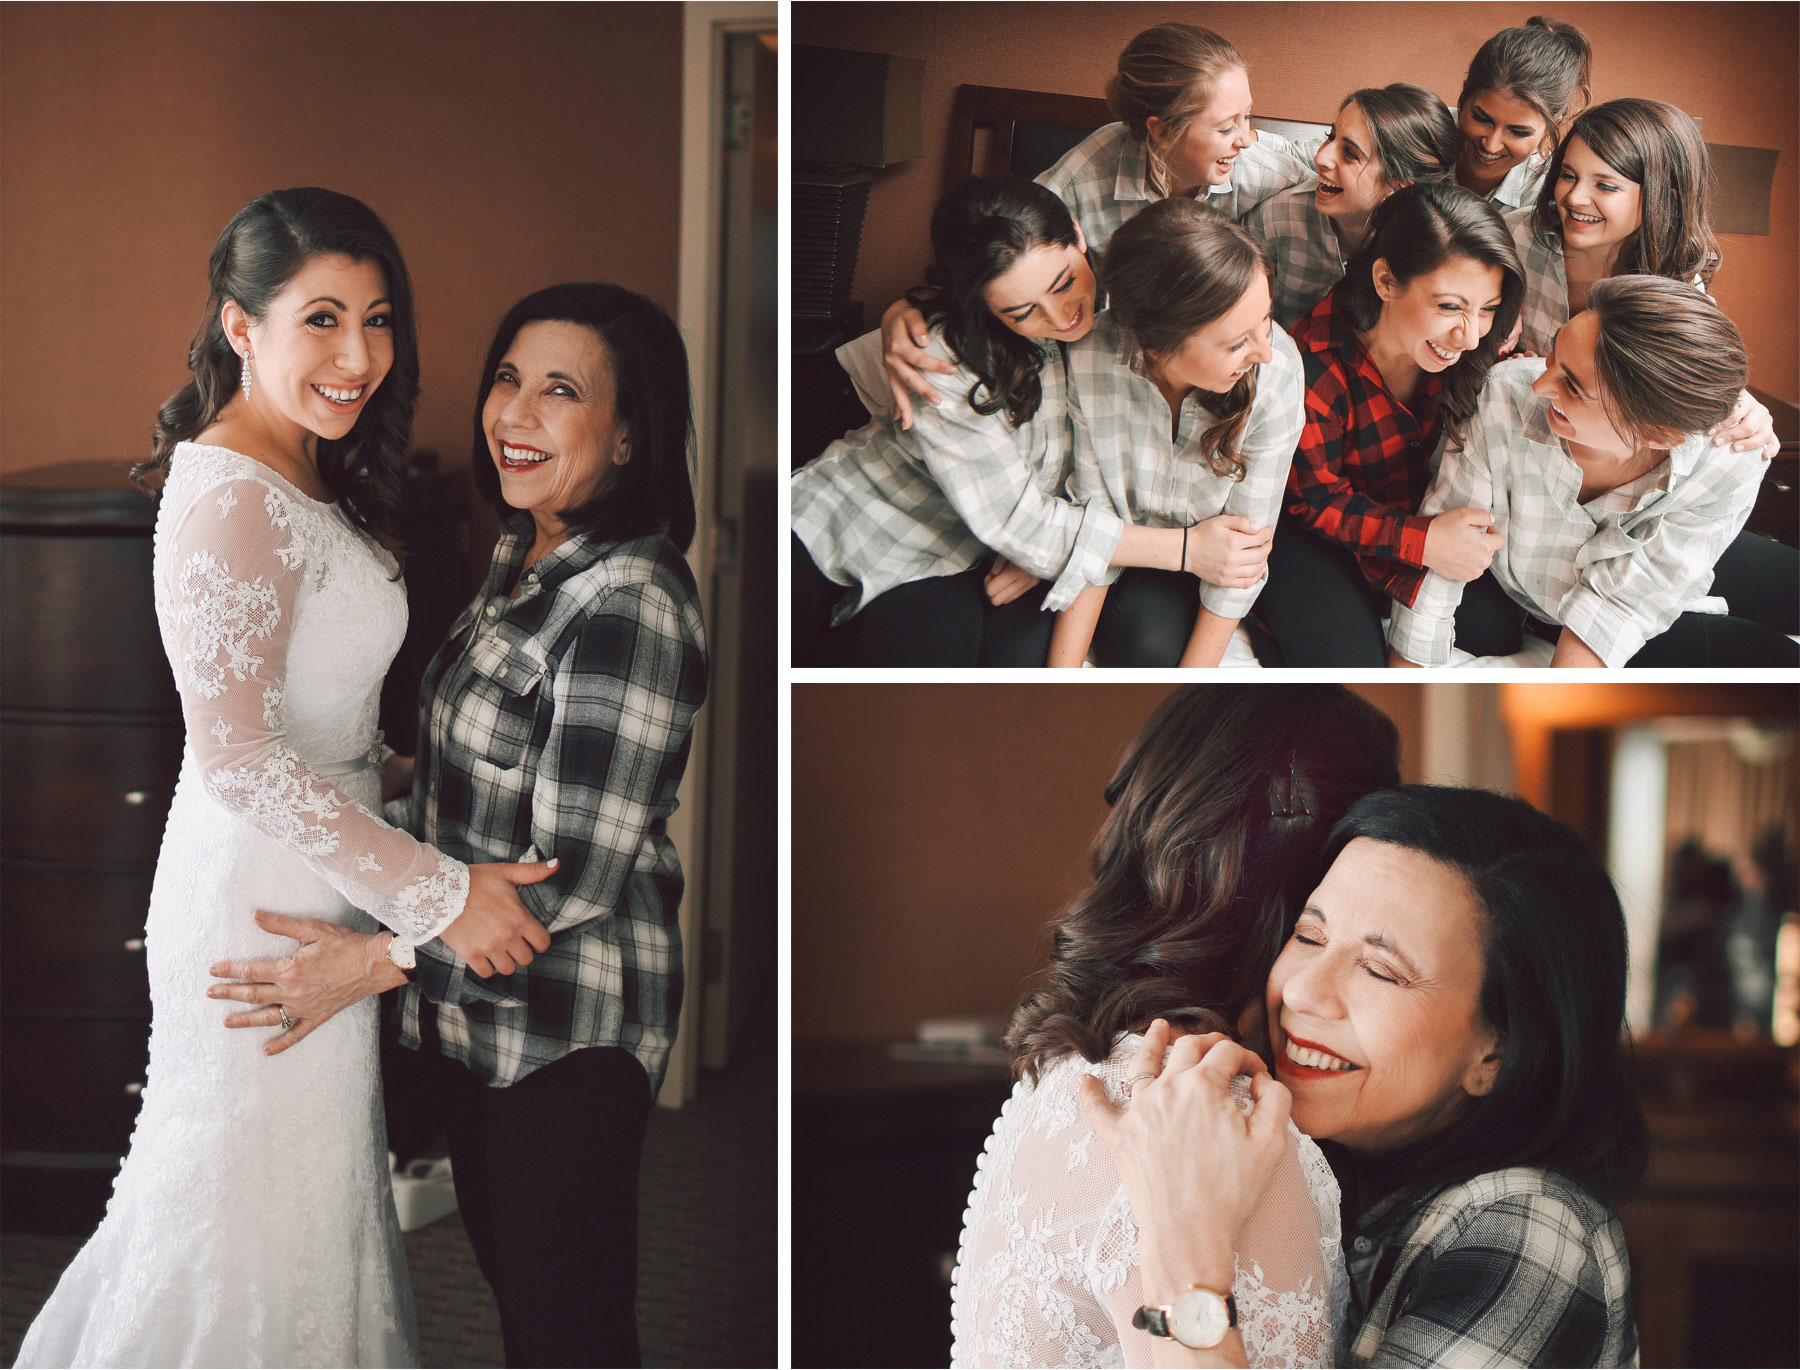 02-Minneapolis-Minnesota-Wedding-Photographer-by-Andrew-Vick-Photography-Winter-Millennium-Hotel-Getting-Ready-Bride-Mother-Parents-Bridesmaids-Dress-Vintage-Amy-and-Jordan.jpg